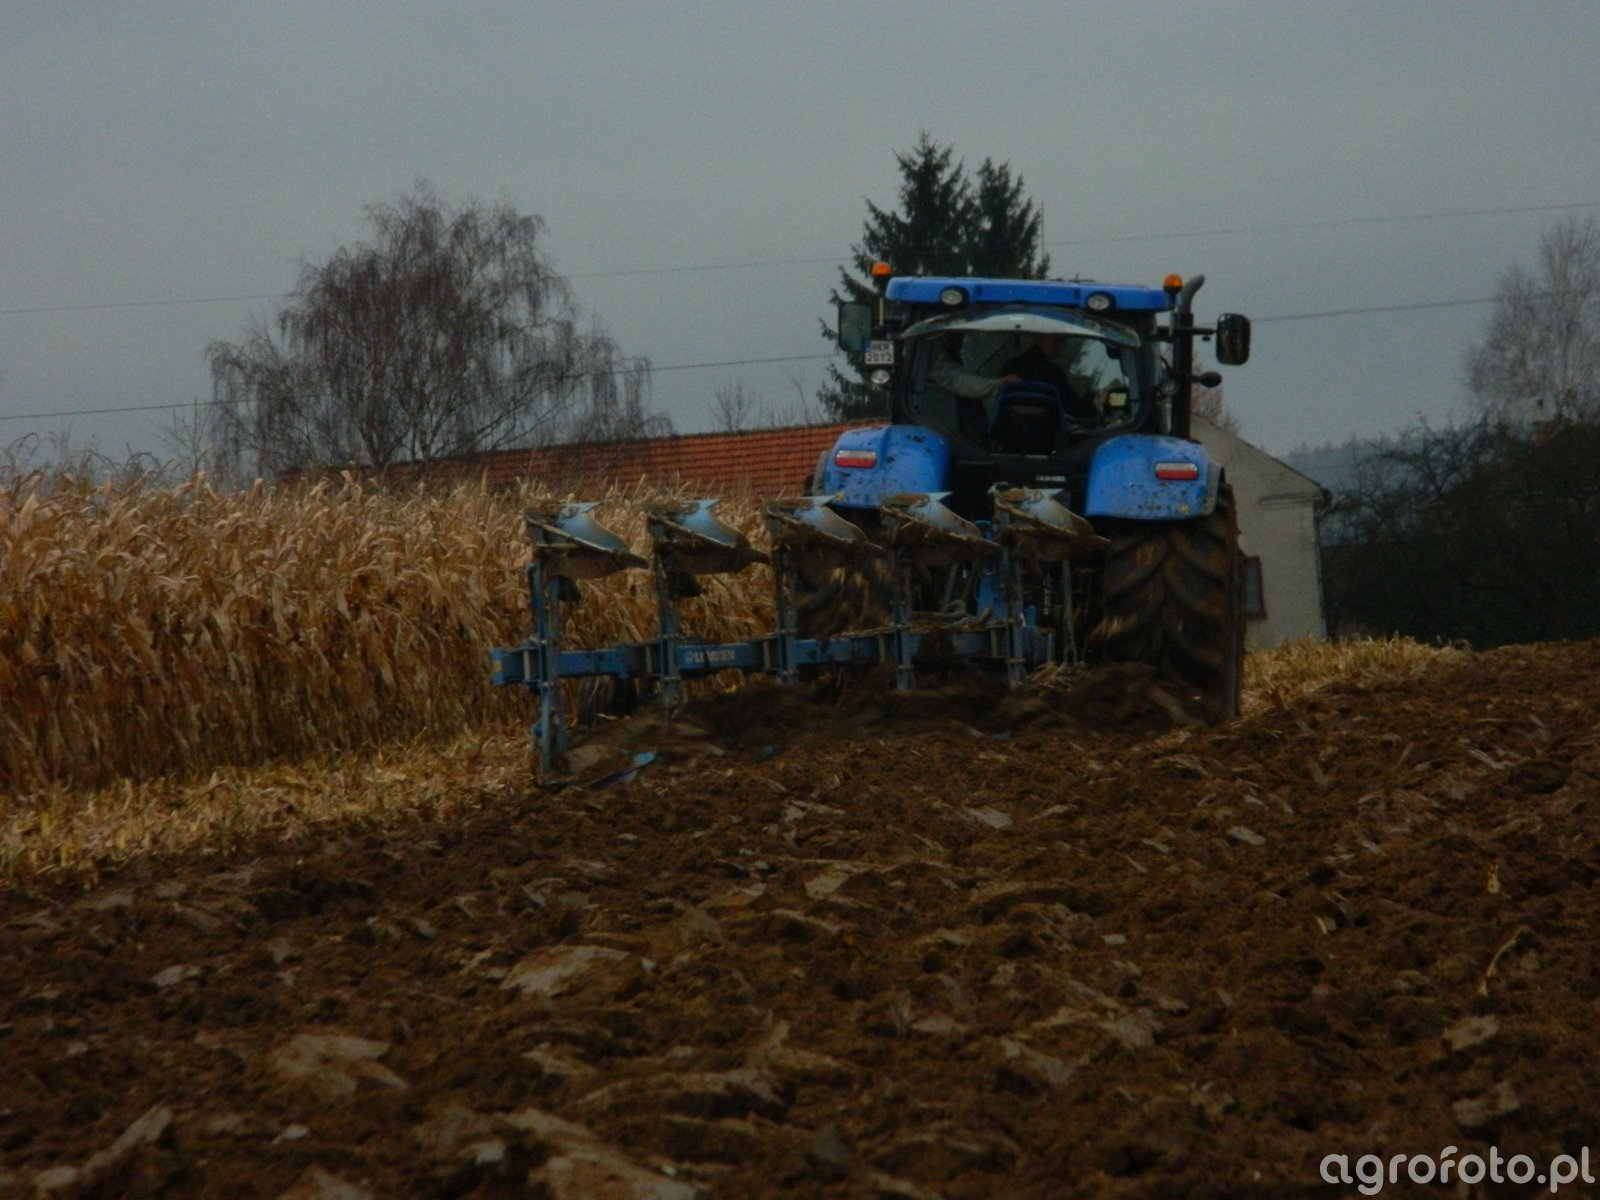 New HollandT7 220, Lemken VariOpal 8